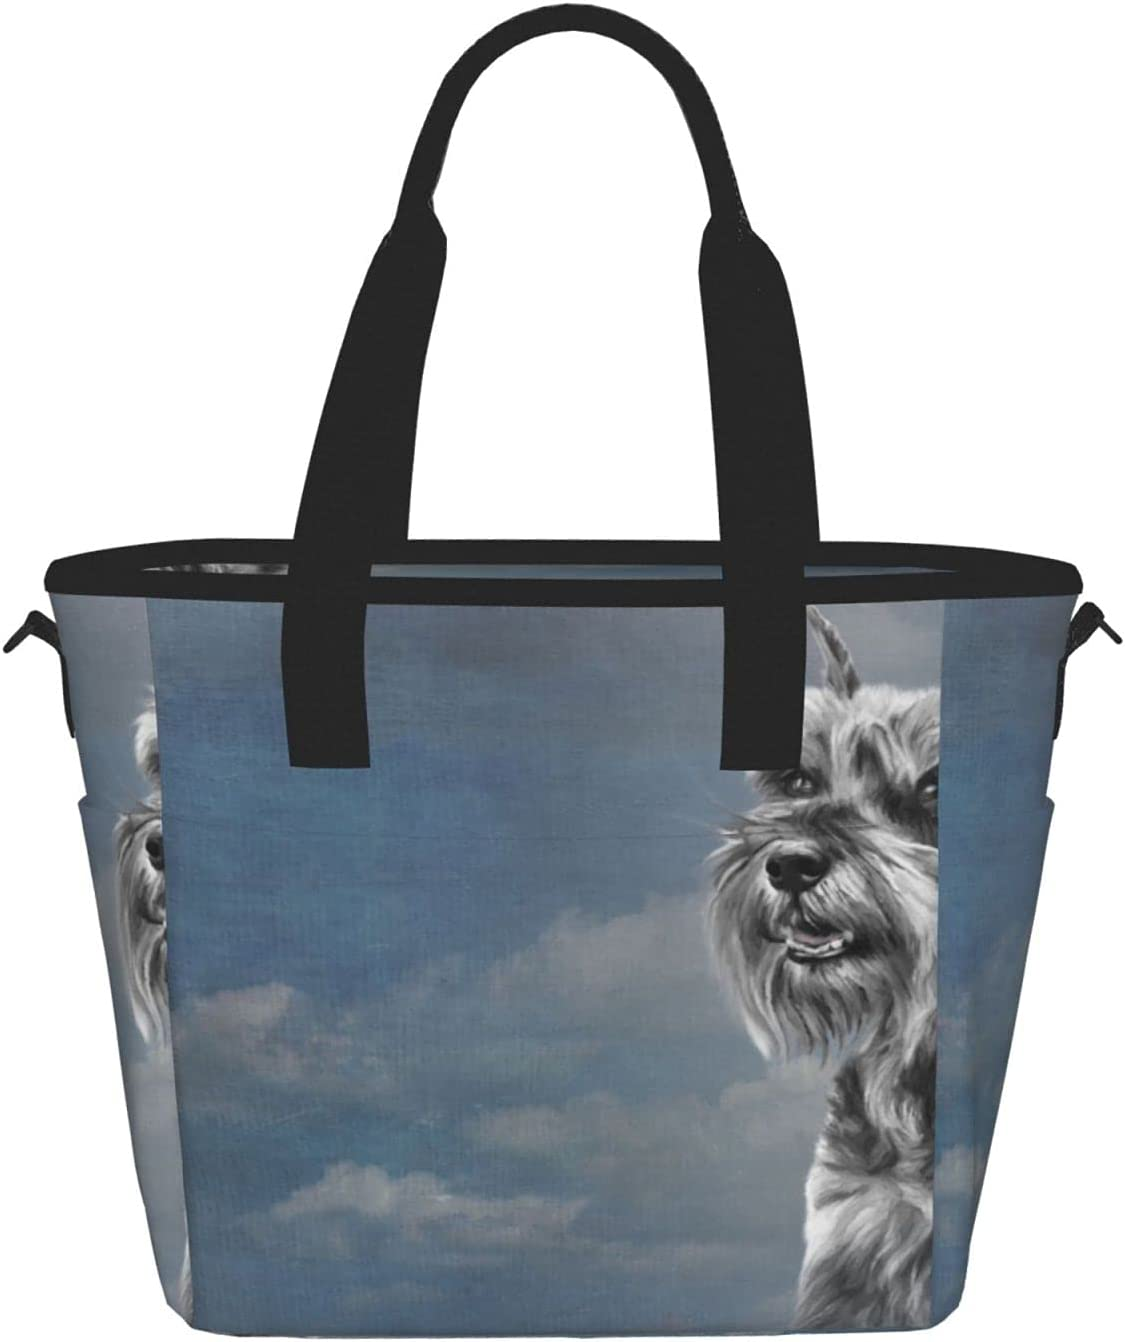 Drawing Miniature Schnauzer Dog Reusable Lunch Max 76% OFF Insulated Ba Time sale Tote